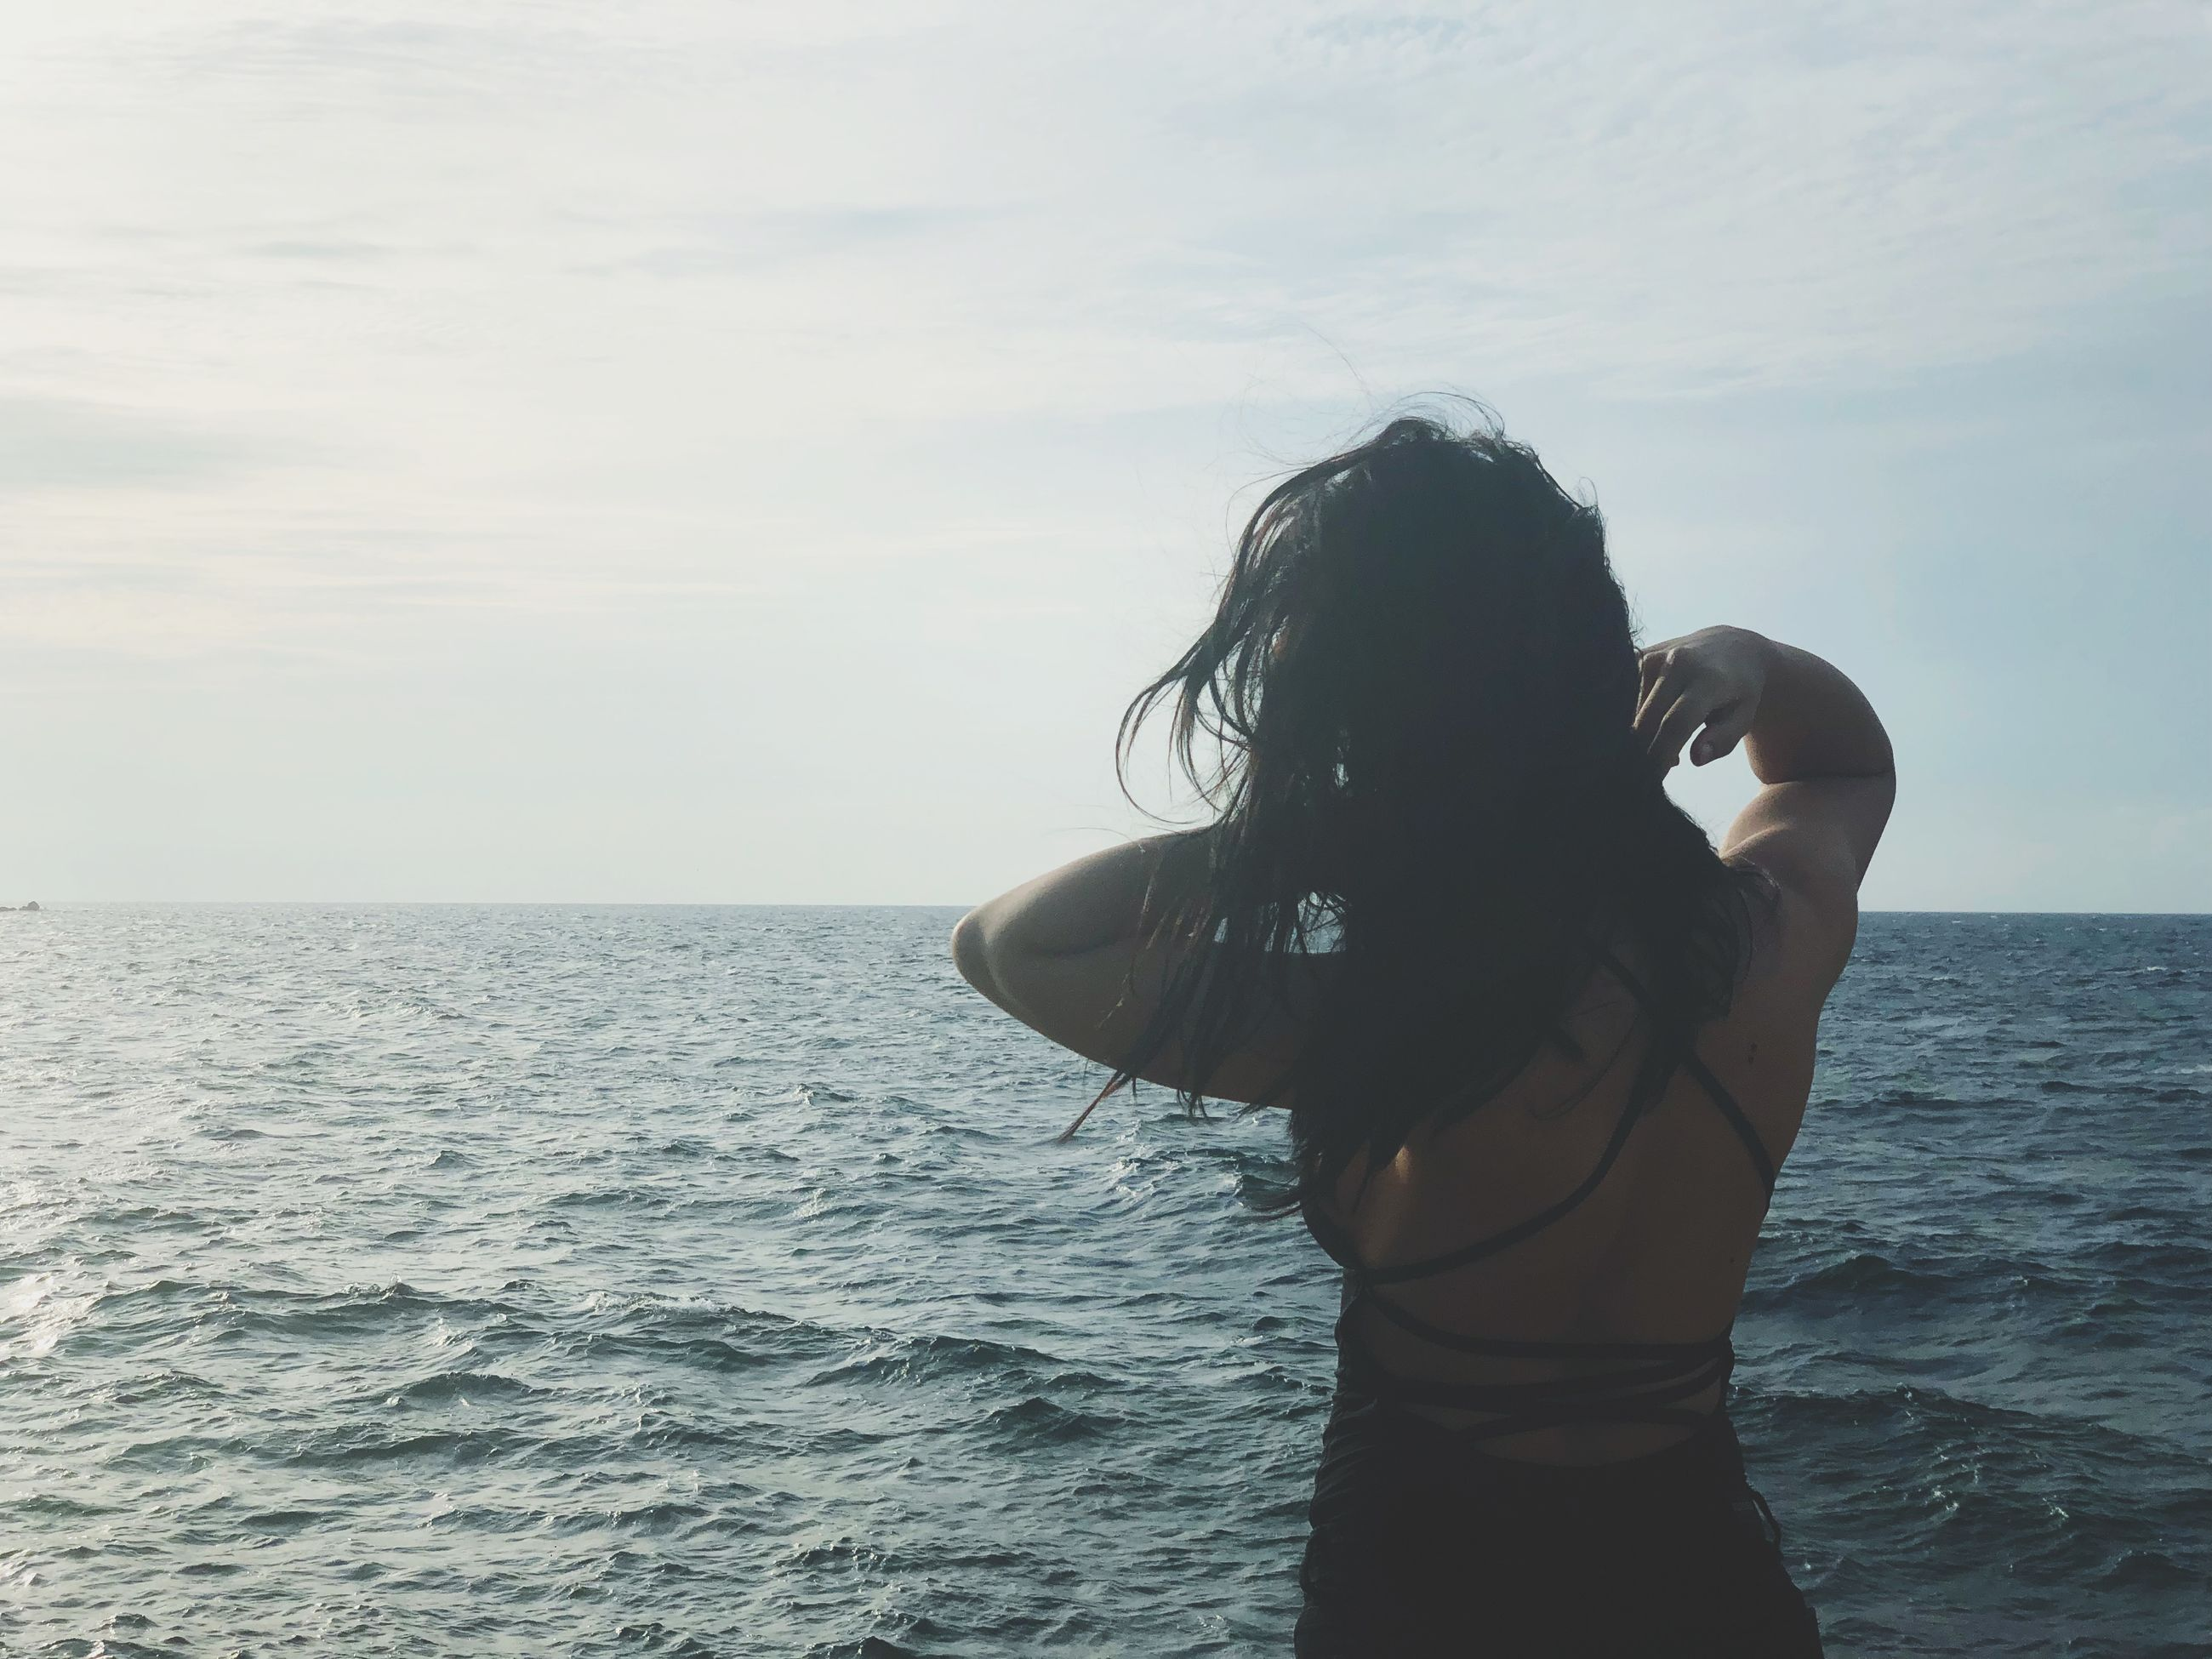 sea, water, sky, one person, horizon, real people, horizon over water, scenics - nature, beauty in nature, women, standing, lifestyles, leisure activity, young women, young adult, hair, nature, rear view, hairstyle, outdoors